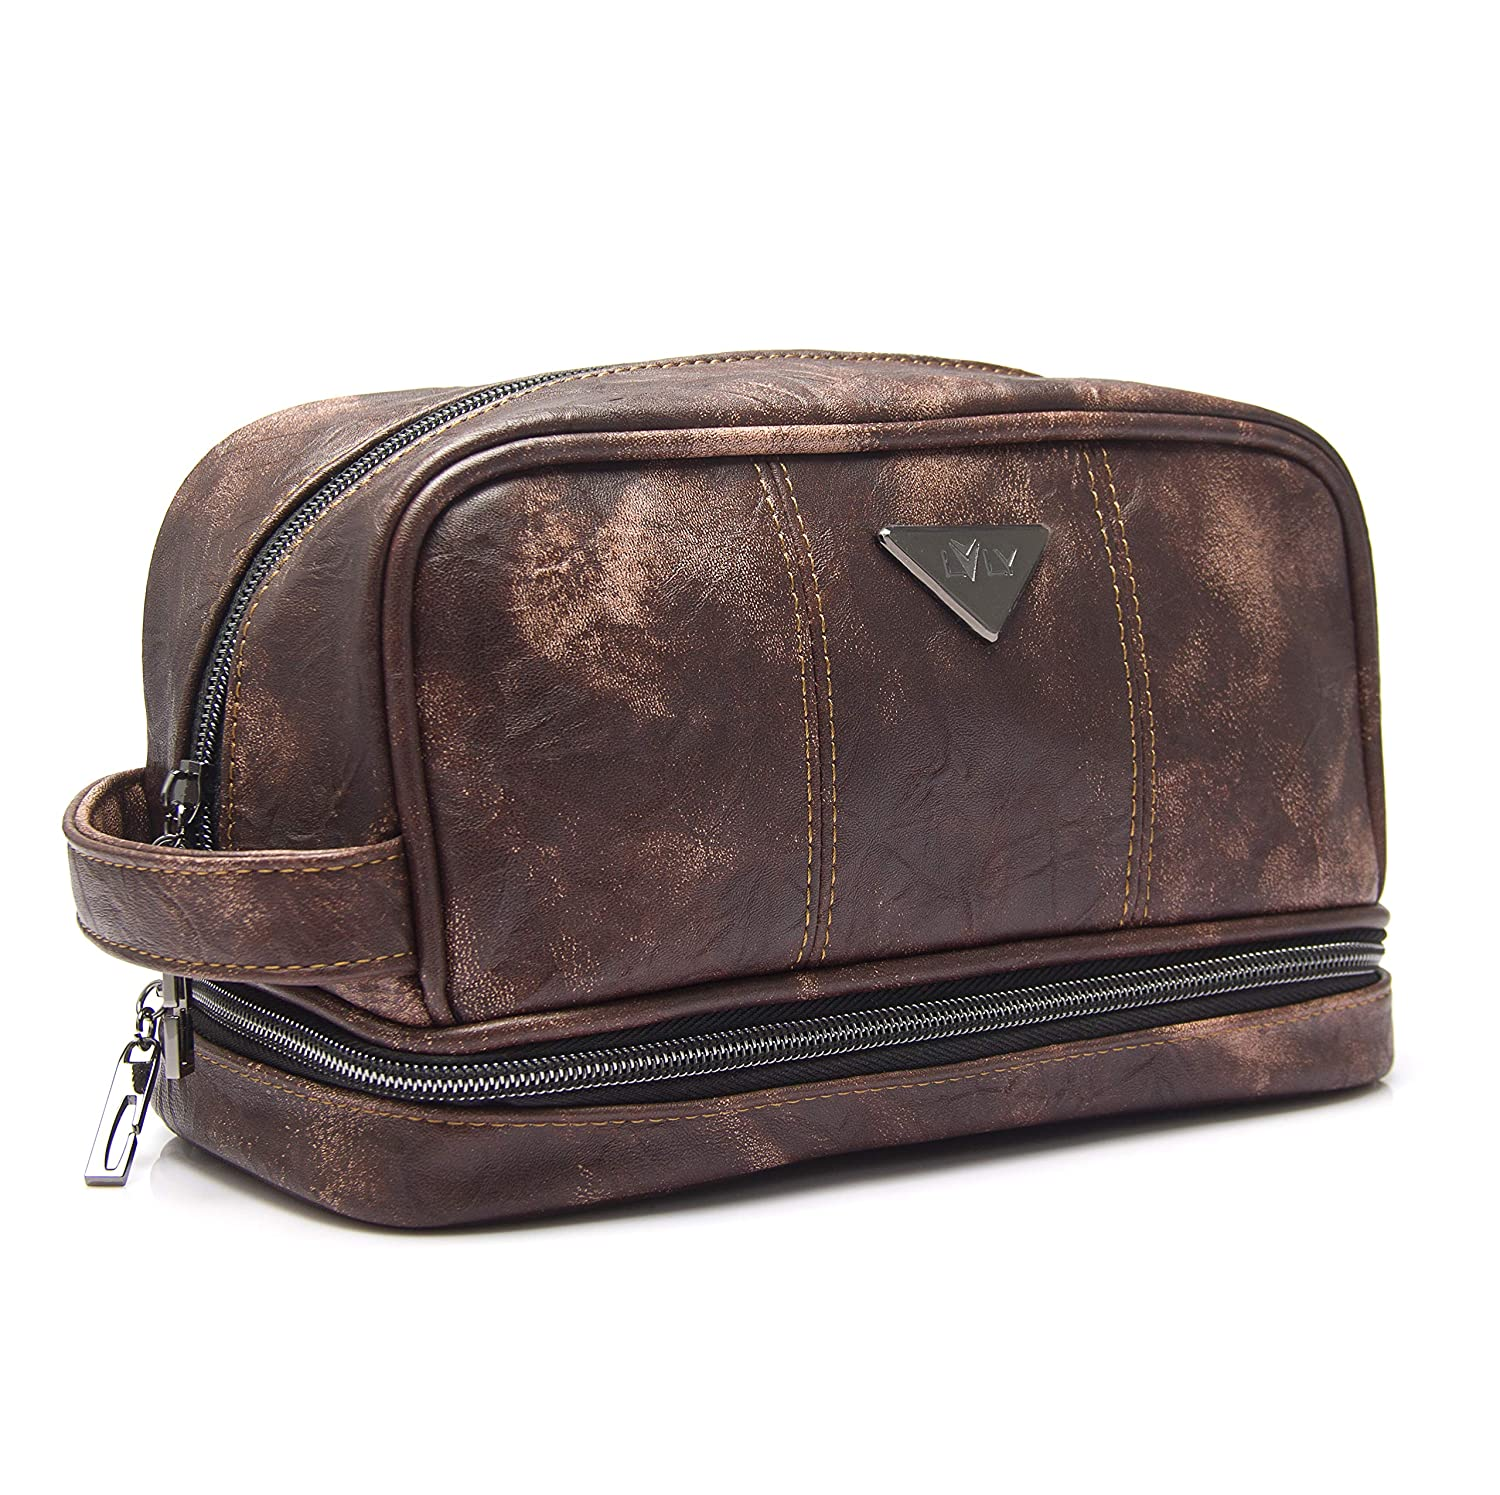 e4234838701c Amazon.com   LVLY Dopp Kit Leather Toiletry Bag for Men - Travel Bags for  Shaving Grooming and Bathroom Toiletries   Beauty